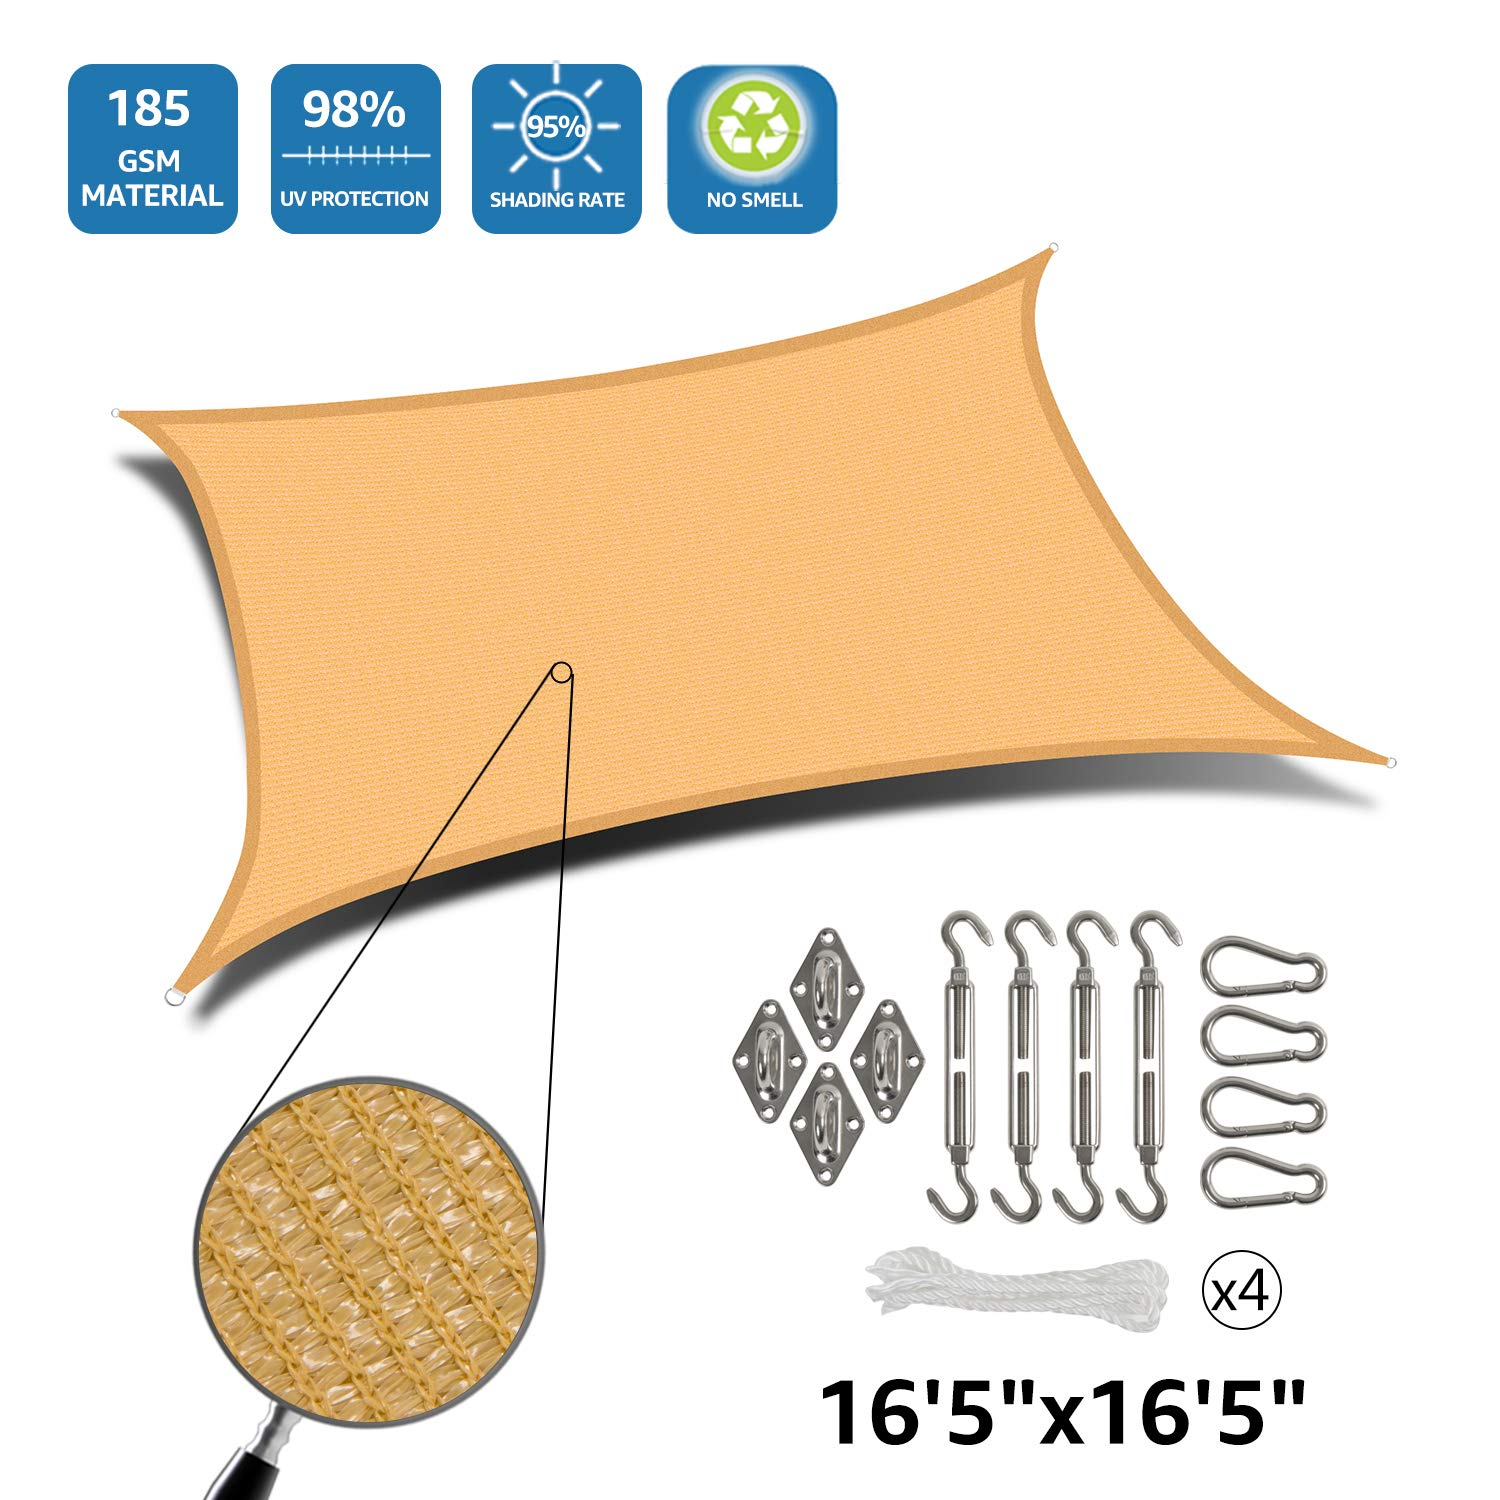 DOEWORKS Rectangle 16'5''x16'5'' Sun Shade Sail with Stainless Steel Hardware Kit, UV Block for Outdoor Patio Garden, Sand by DOEWORKS